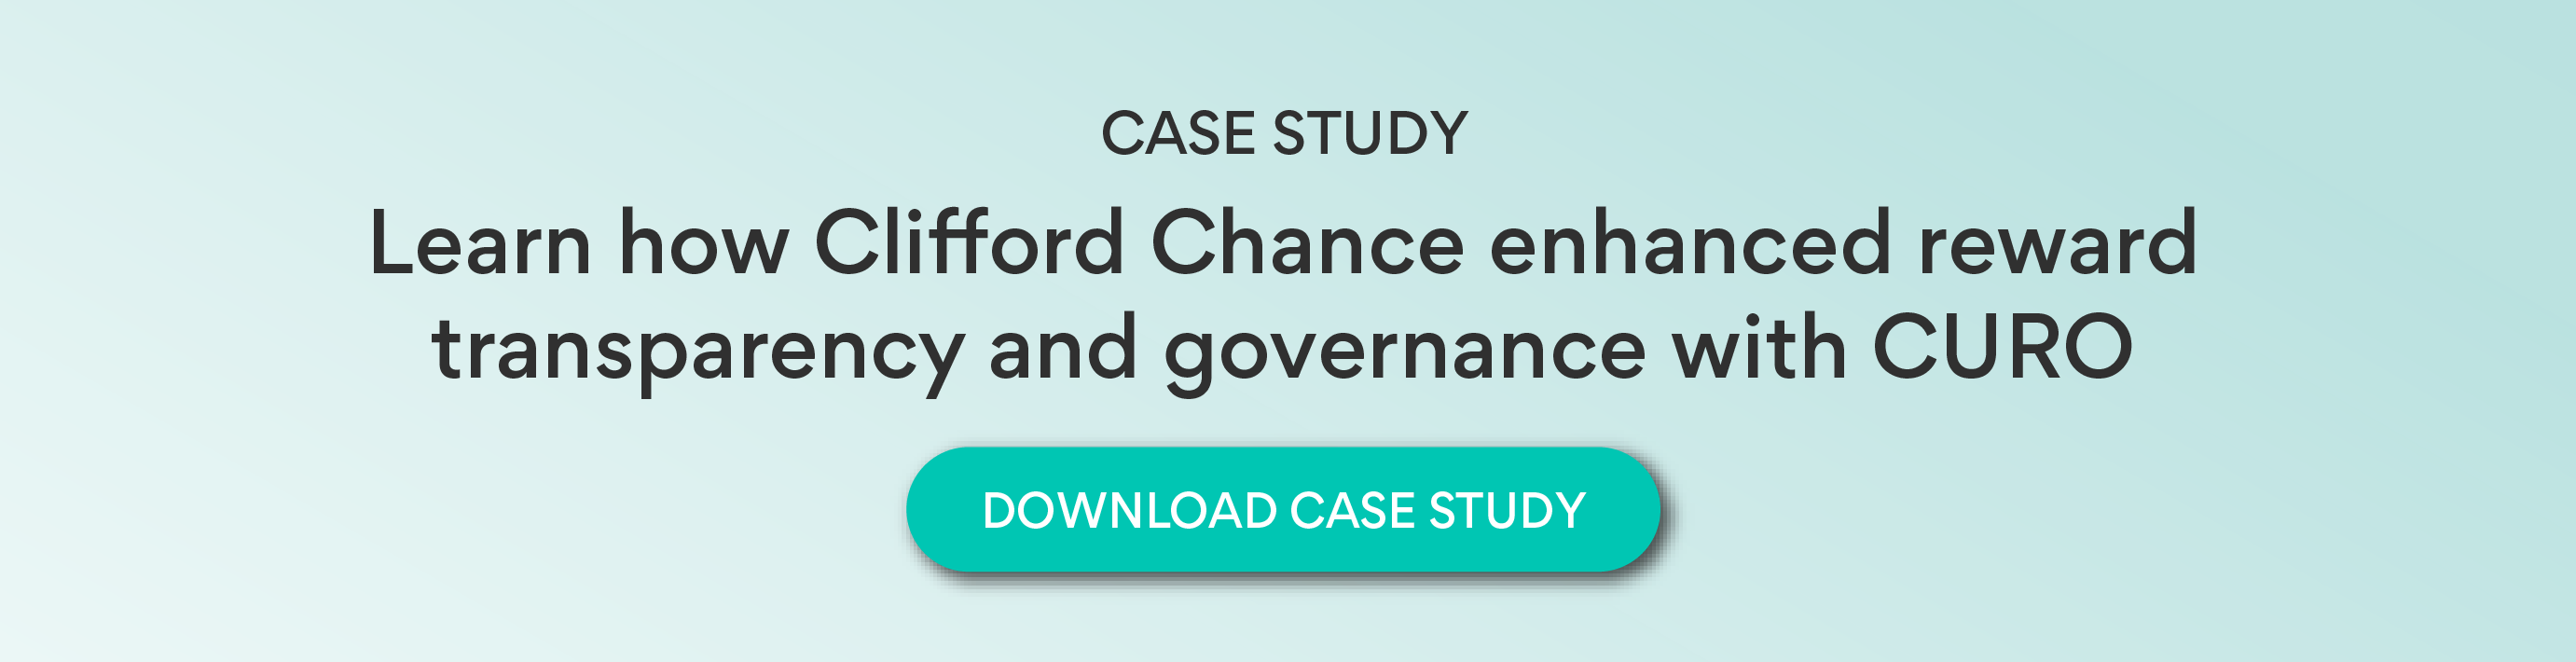 Clifford Chance Case Study